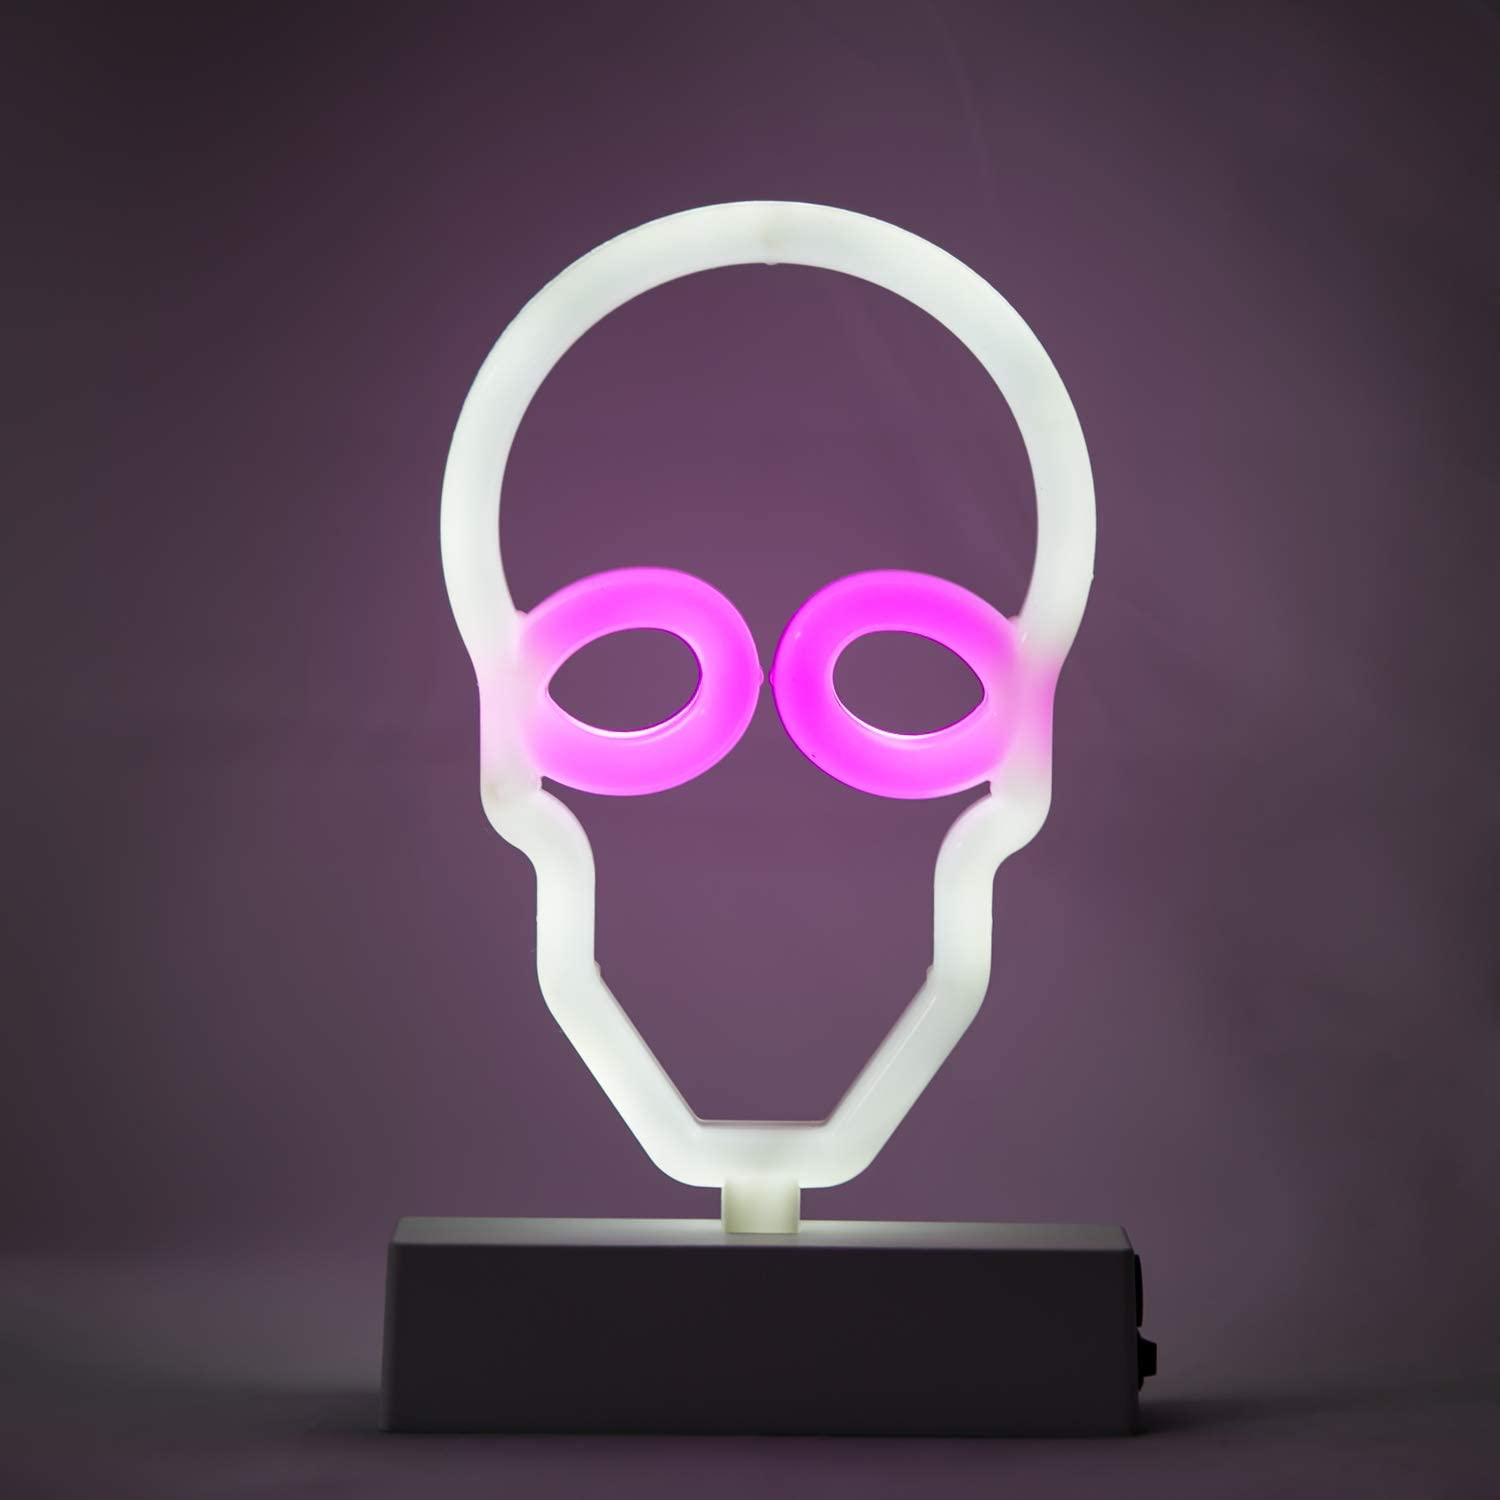 YR Halloween Decorations LED Neon Sign Light. Indoor Night Table Lamp with Battery or USB Powered for Party, Living Room, Family Room, Kids Room, Home Décor, Skull